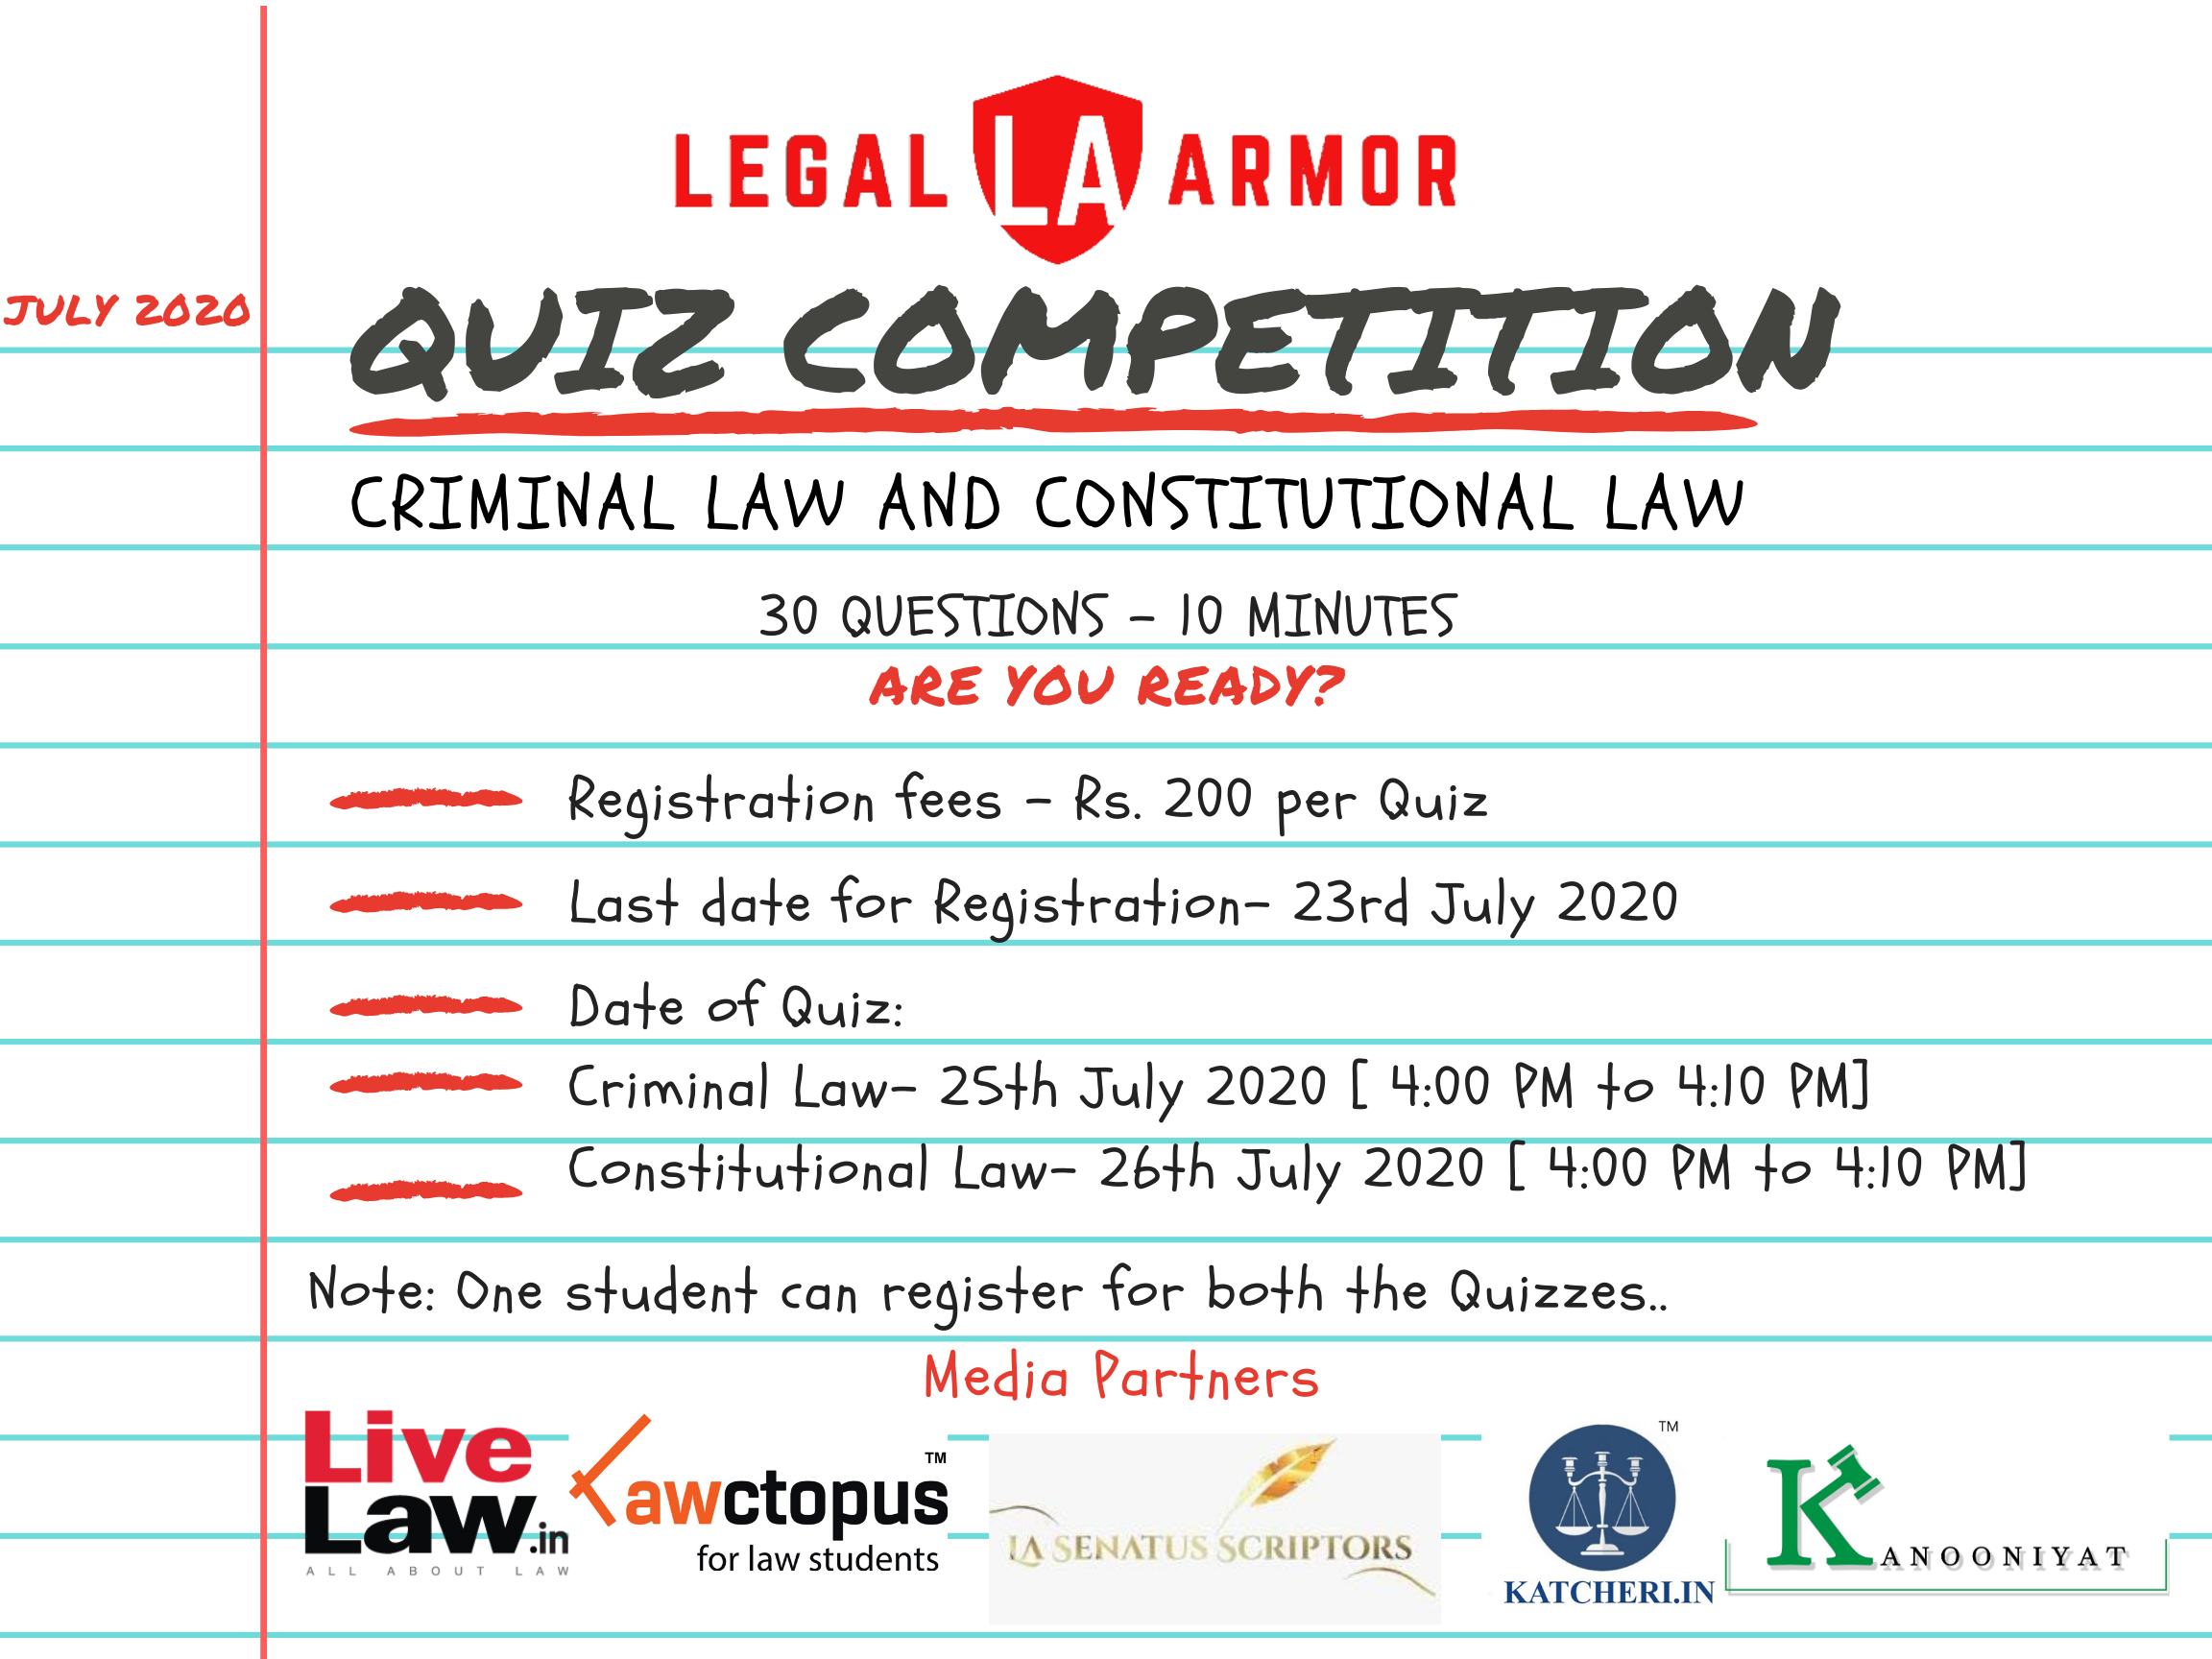 Legal Armor Quiz Competition